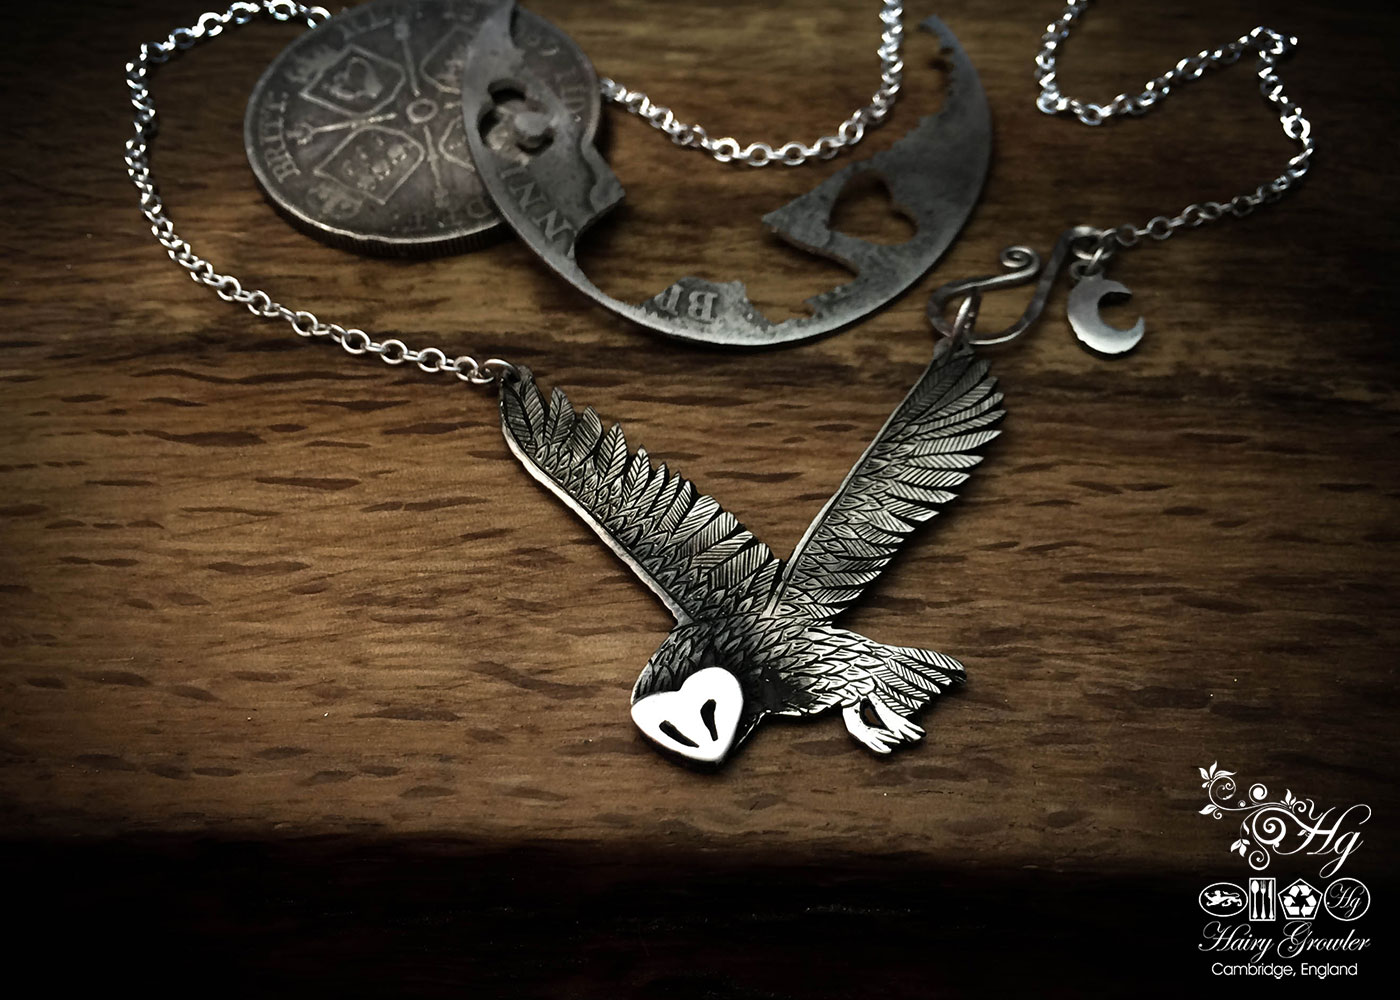 handcrafted and recycled silver coin flying owl necklace handmade in cambridge